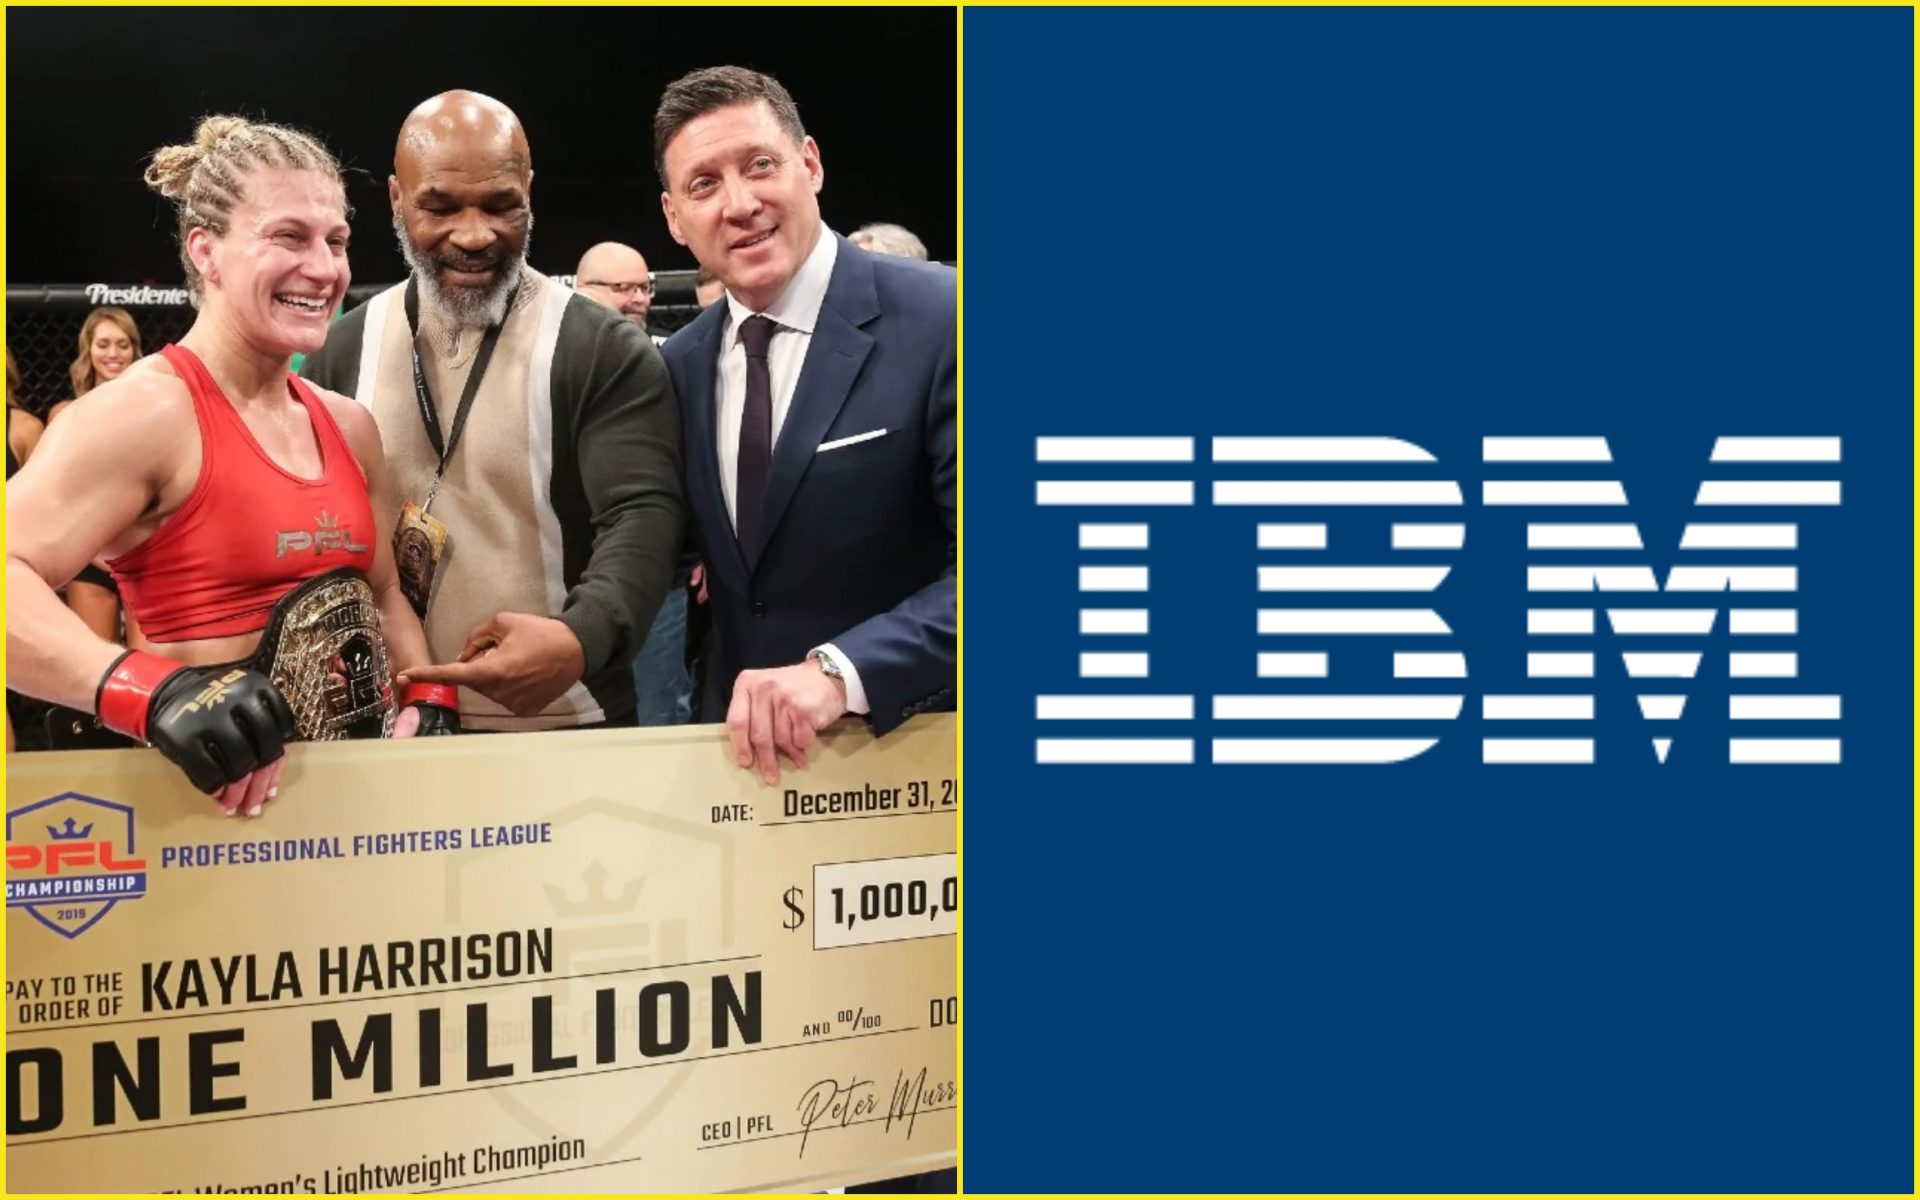 Professional Fighters League ropes in IBM to provide innovative technology - IBM